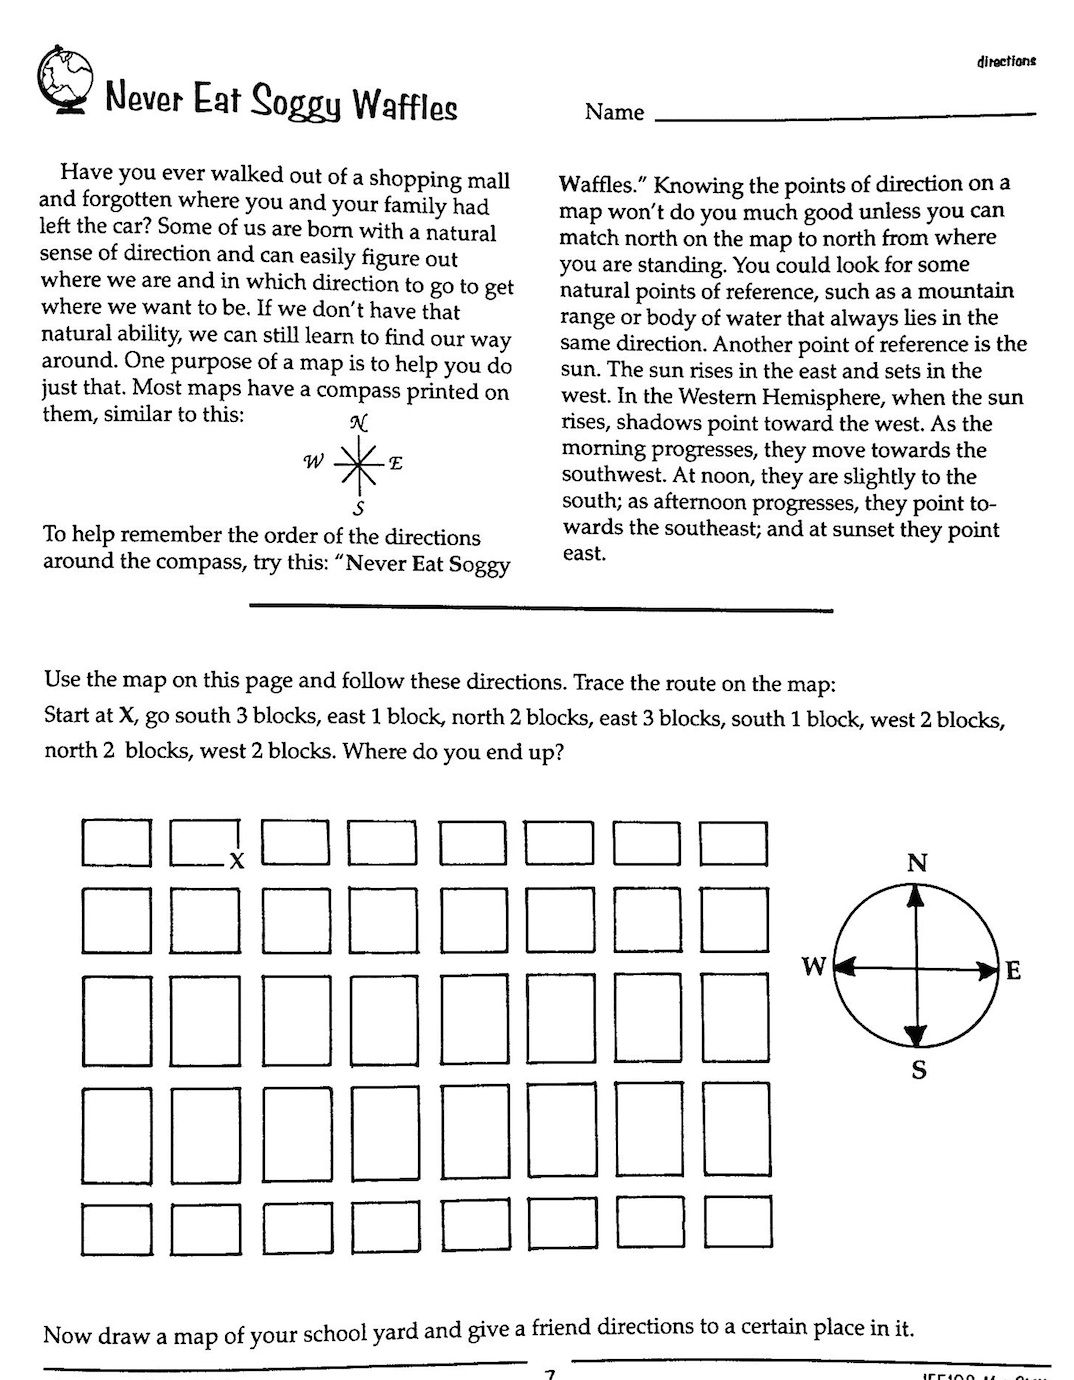 Hieroglyphics Worksheet